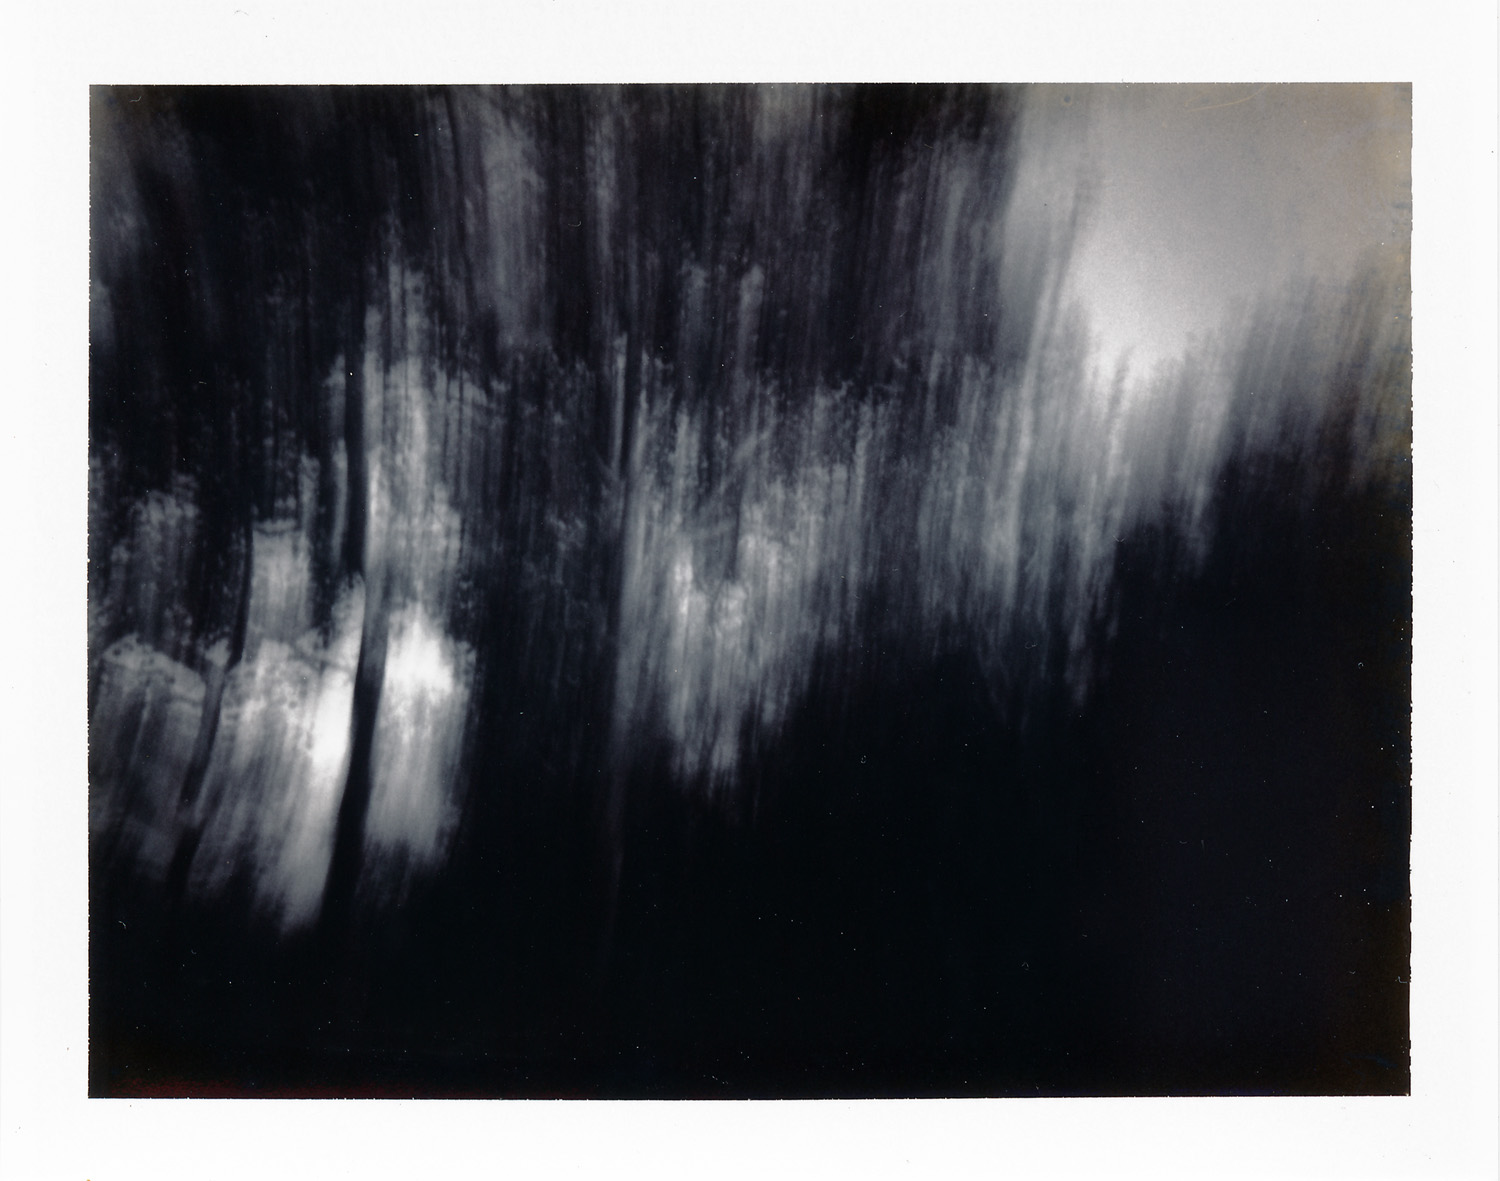 Original polaroid pinhole 664 type100 print, Mike Tedder